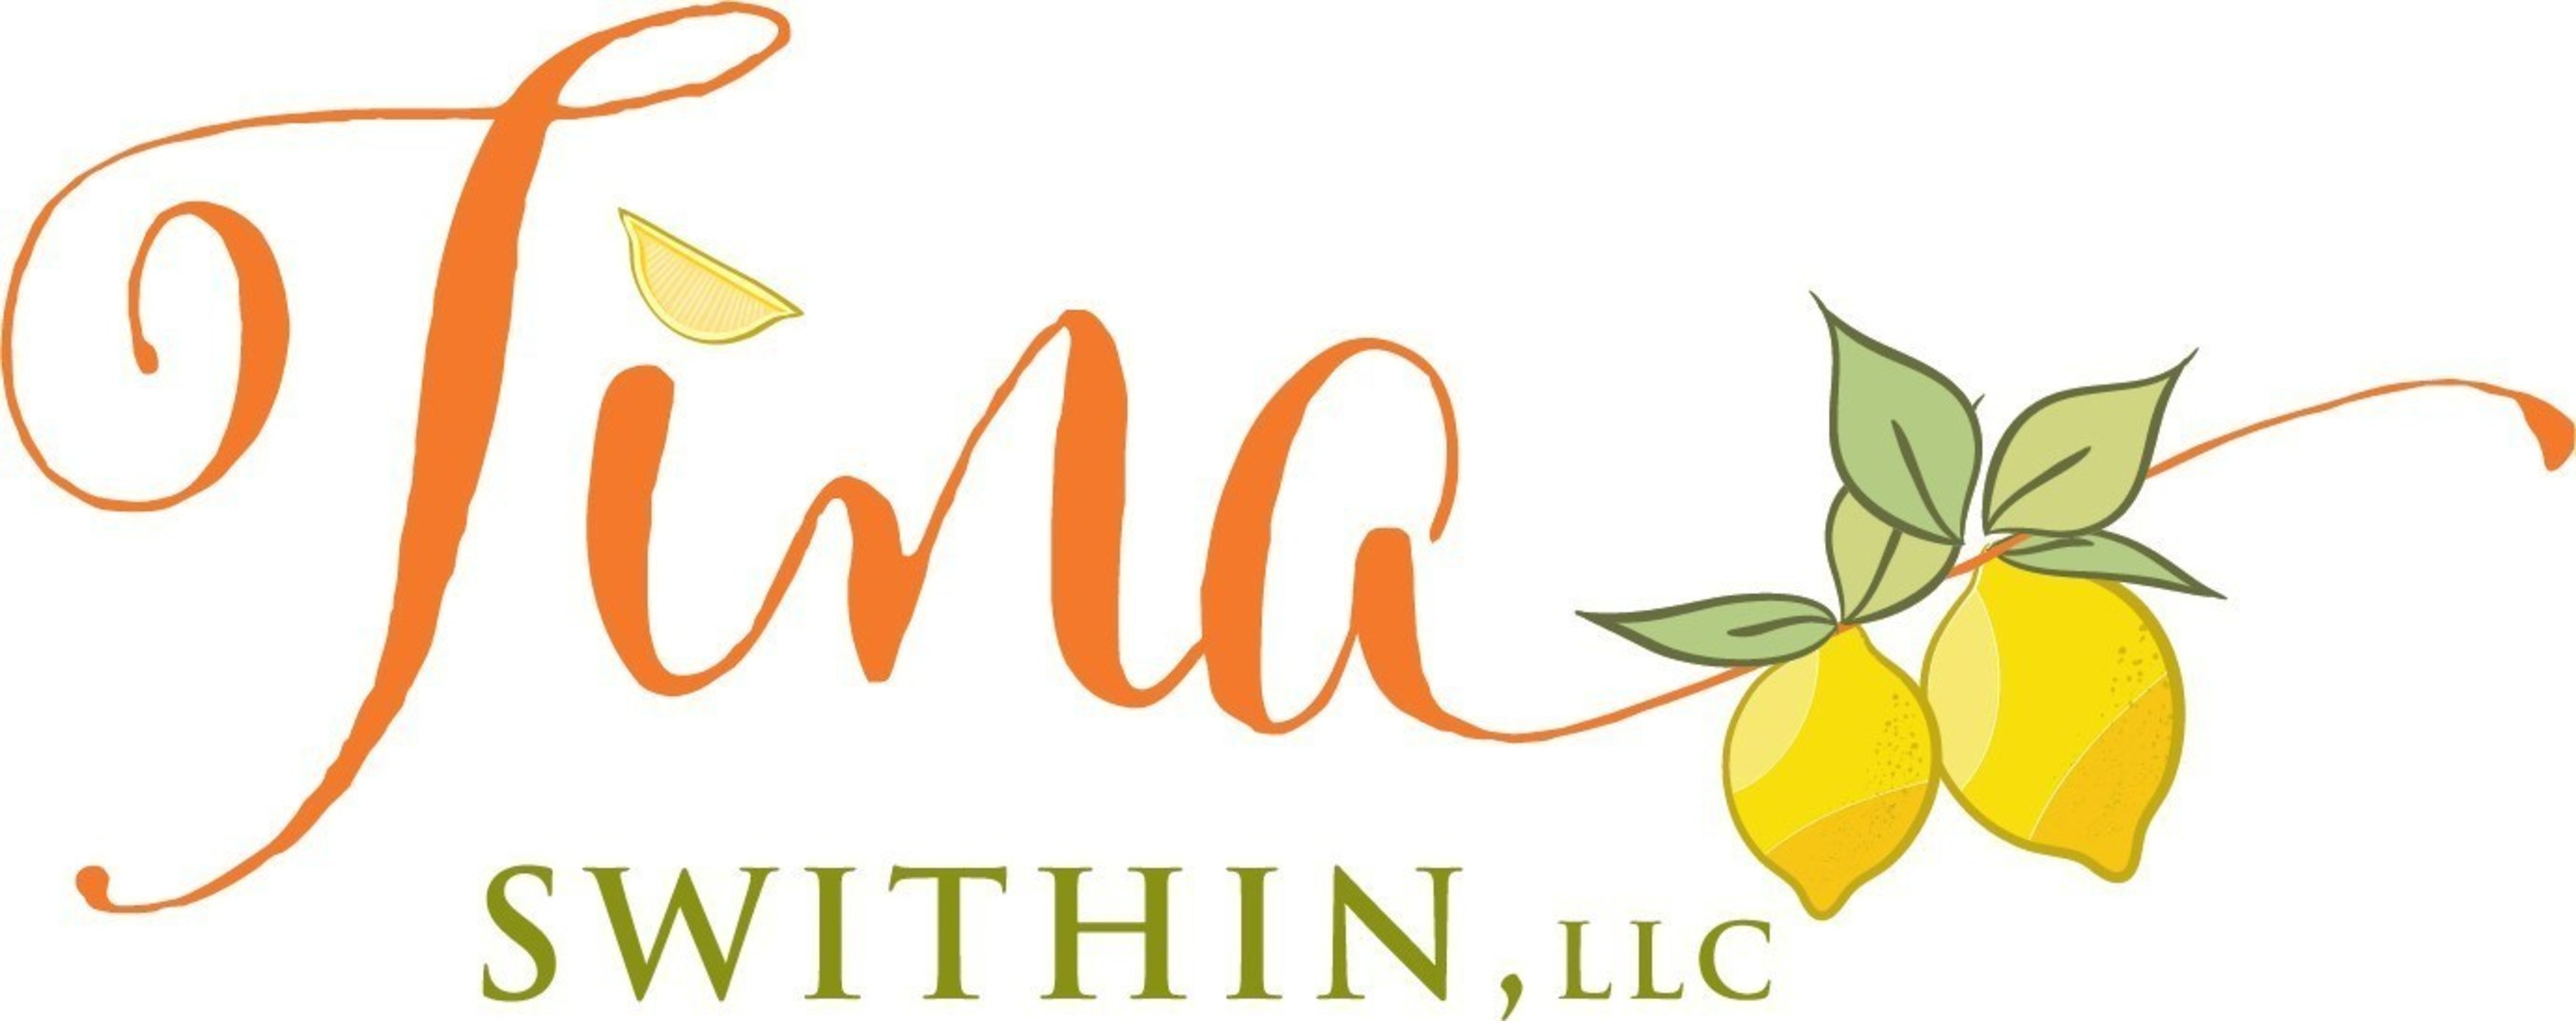 Author Tina Swithin Offers Private Forum and Fall Retreat